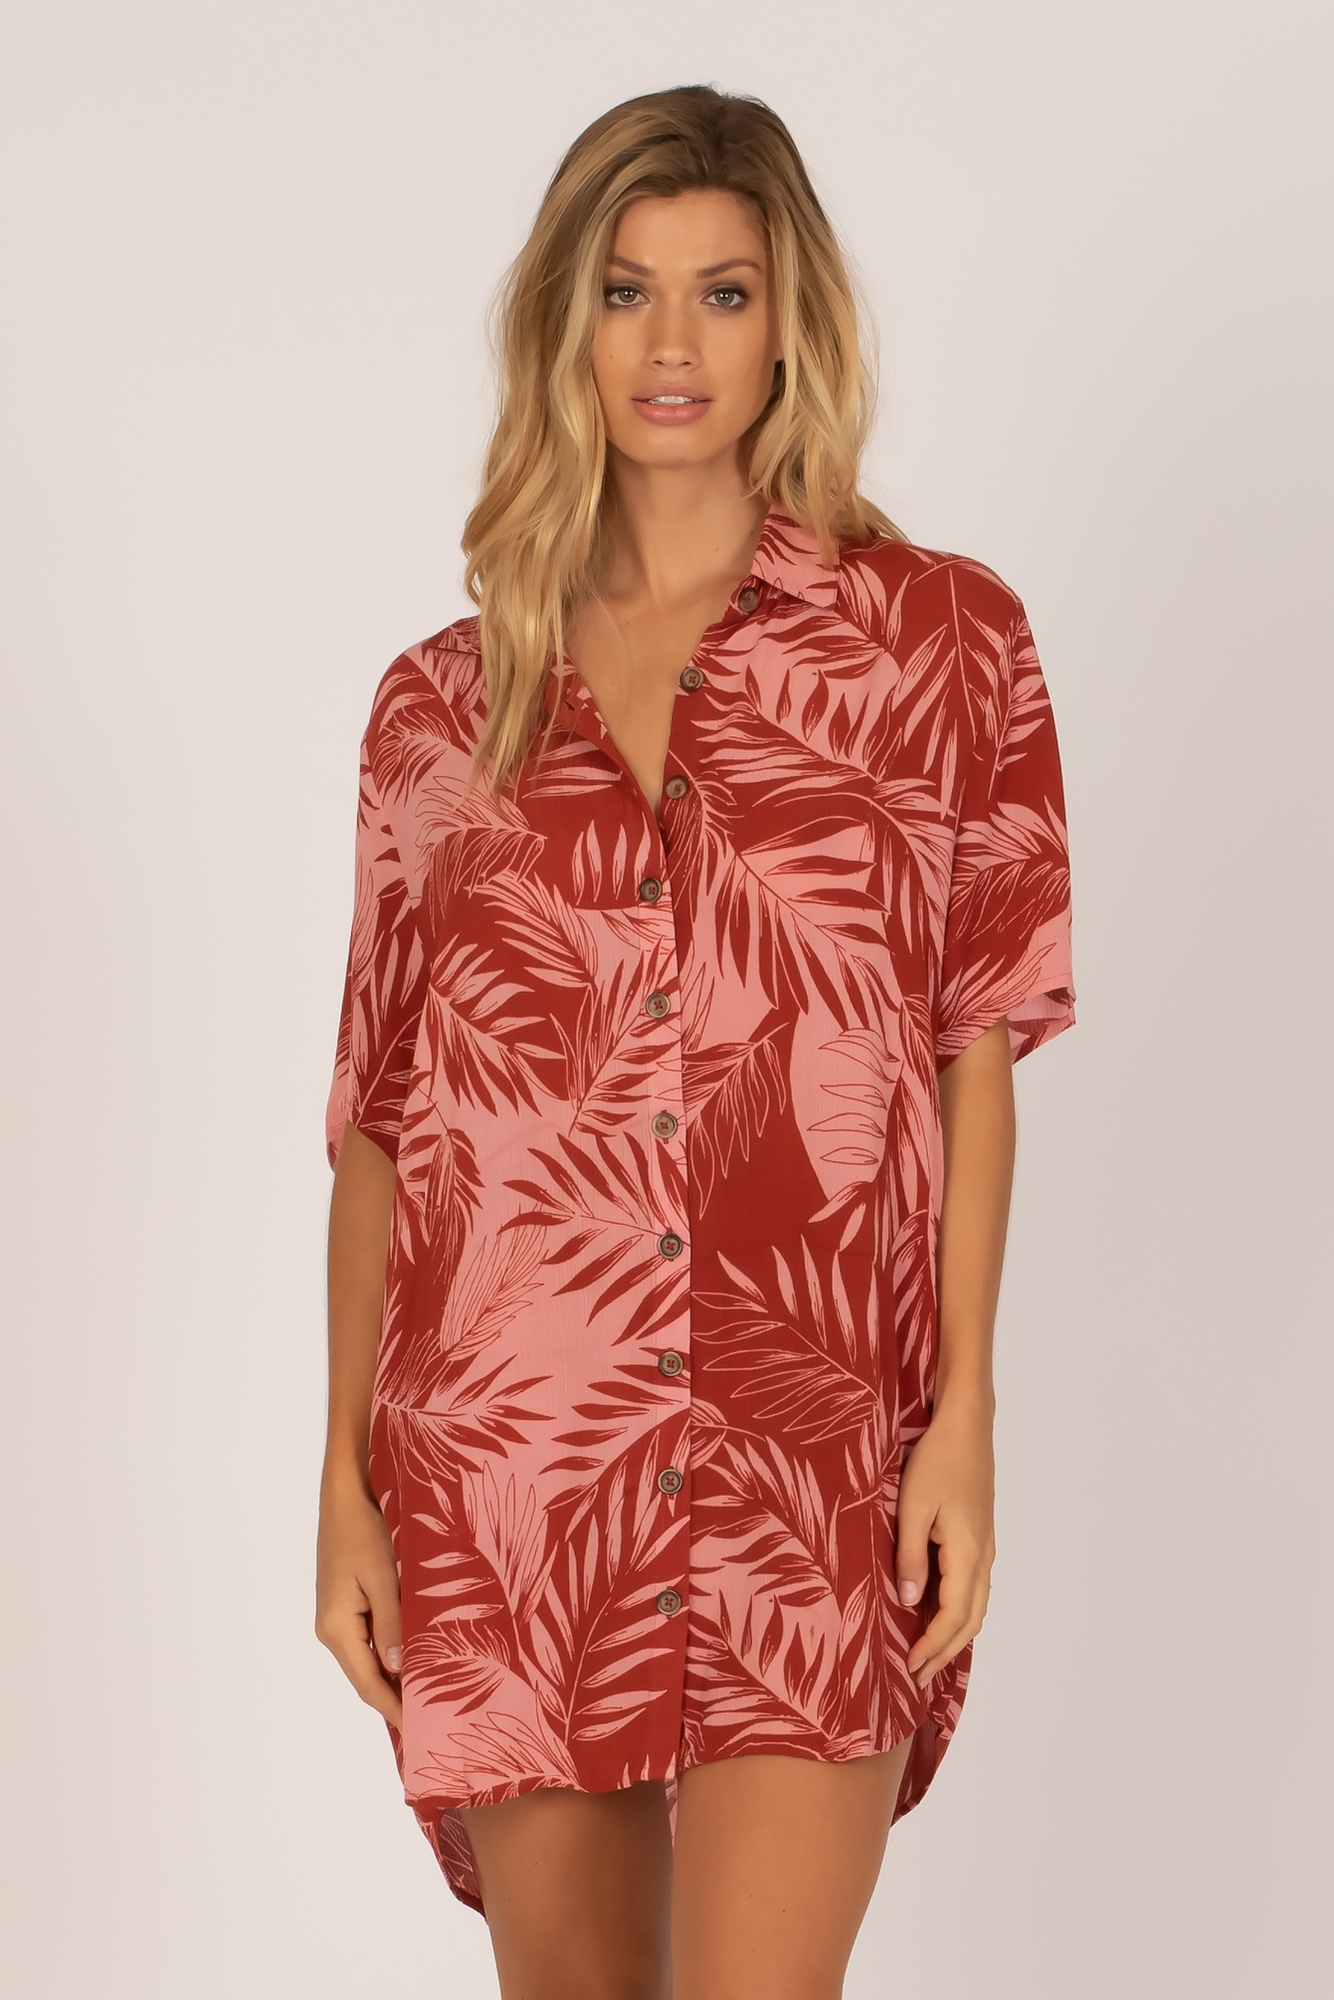 Shady Palms Dress